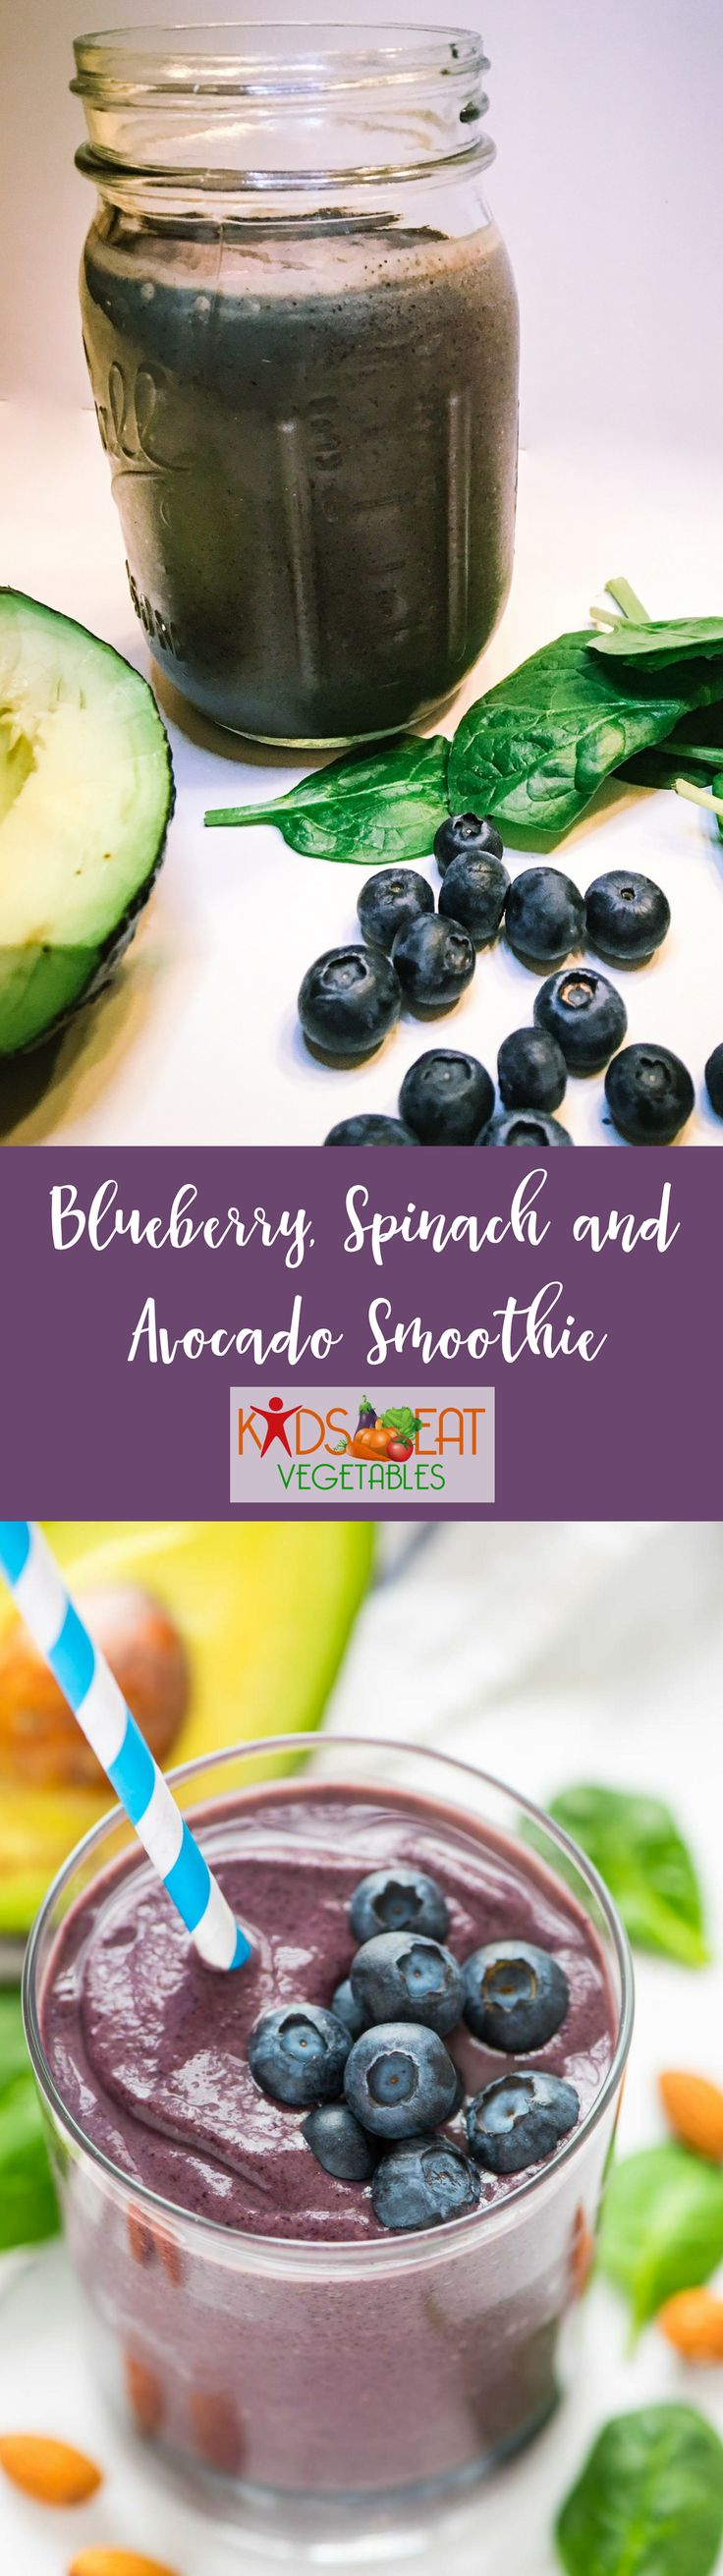 Smoothies are an essential tool in every mom's nutritional tool kit, and this creamy delicious, dairy free blueberry, spinach and avocado smoothie is a great start to the day or the perfect midday snack. This smoothie is fiber powerhouse, perfect for helping your kiddos stay regular on the potty.  Blueberries bring fiber and vitamins A and K, while spinach is a good source of iron, has a good amount of fiber as well as vitamin A, C, and K.  Adding avocado to the mix brings a big nutrition…